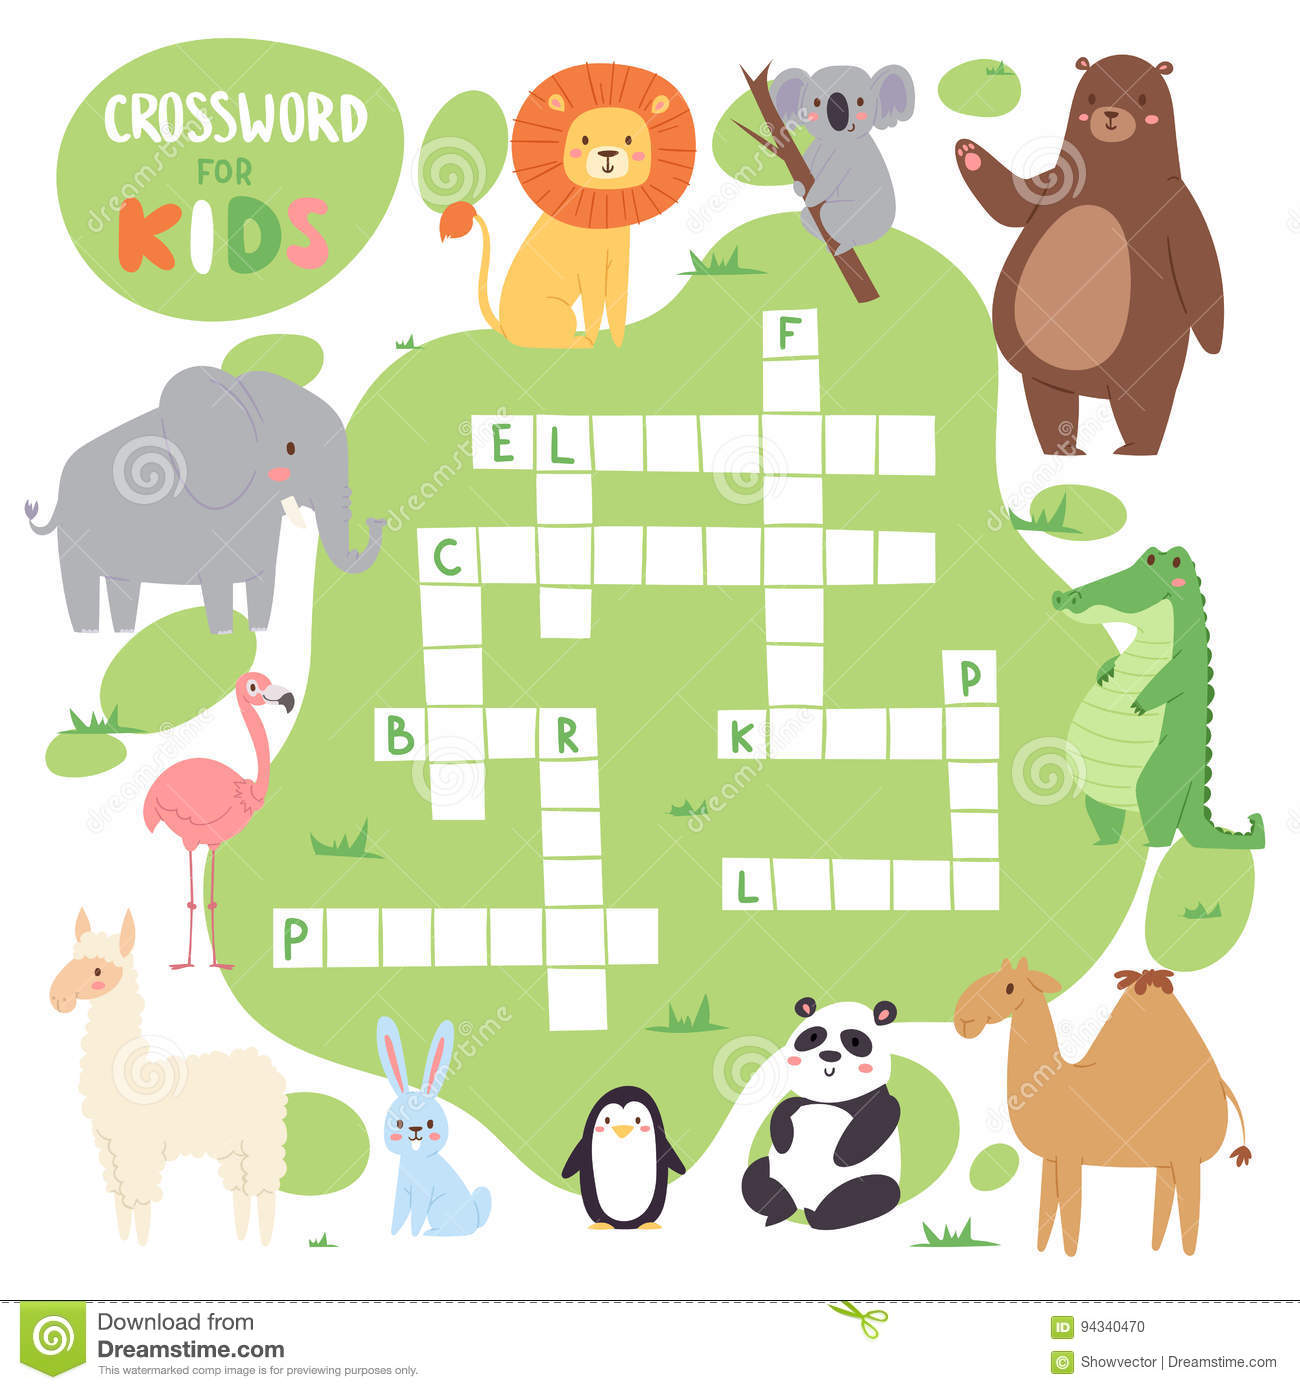 kids magazine book puzzle game of forest animals logical crossword